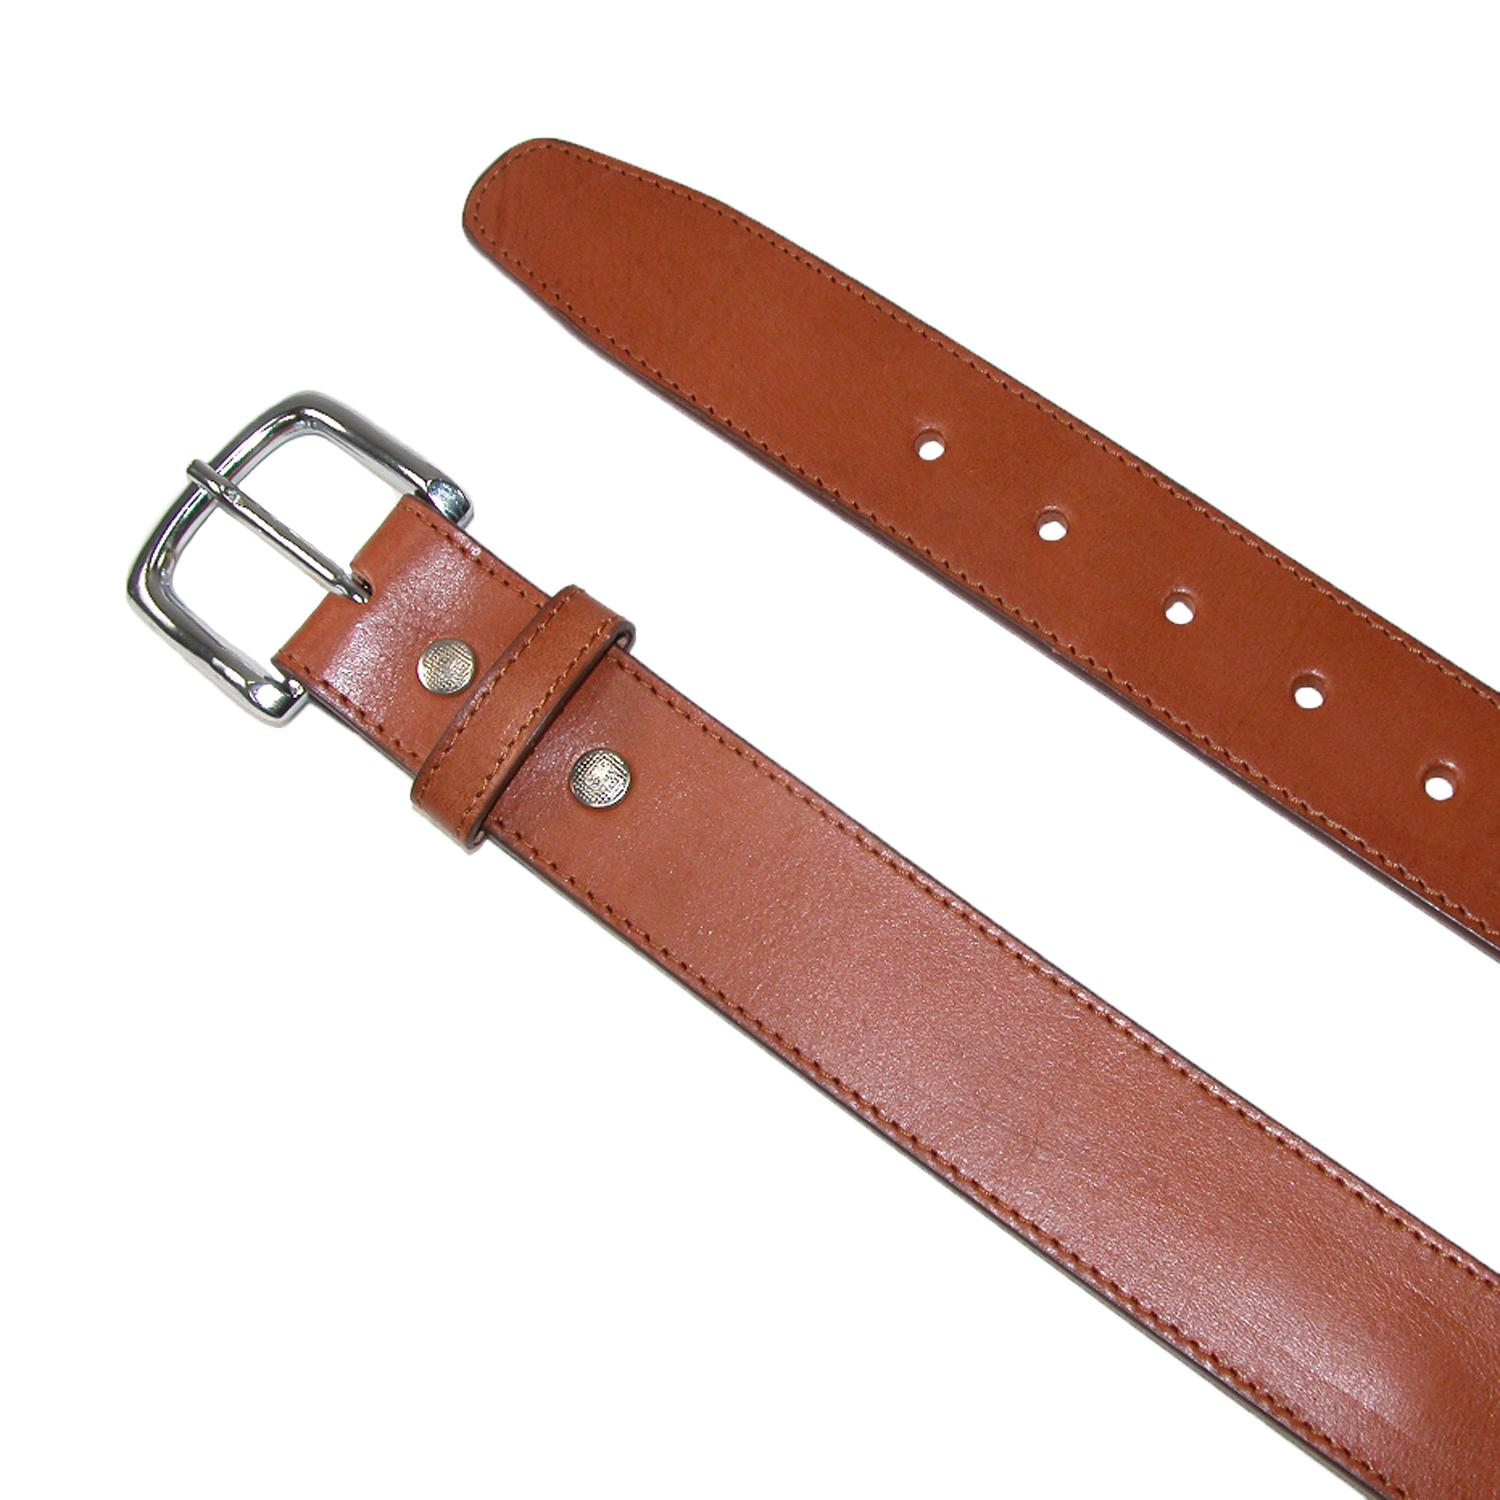 new ctm s leather money belt removable buckle ebay